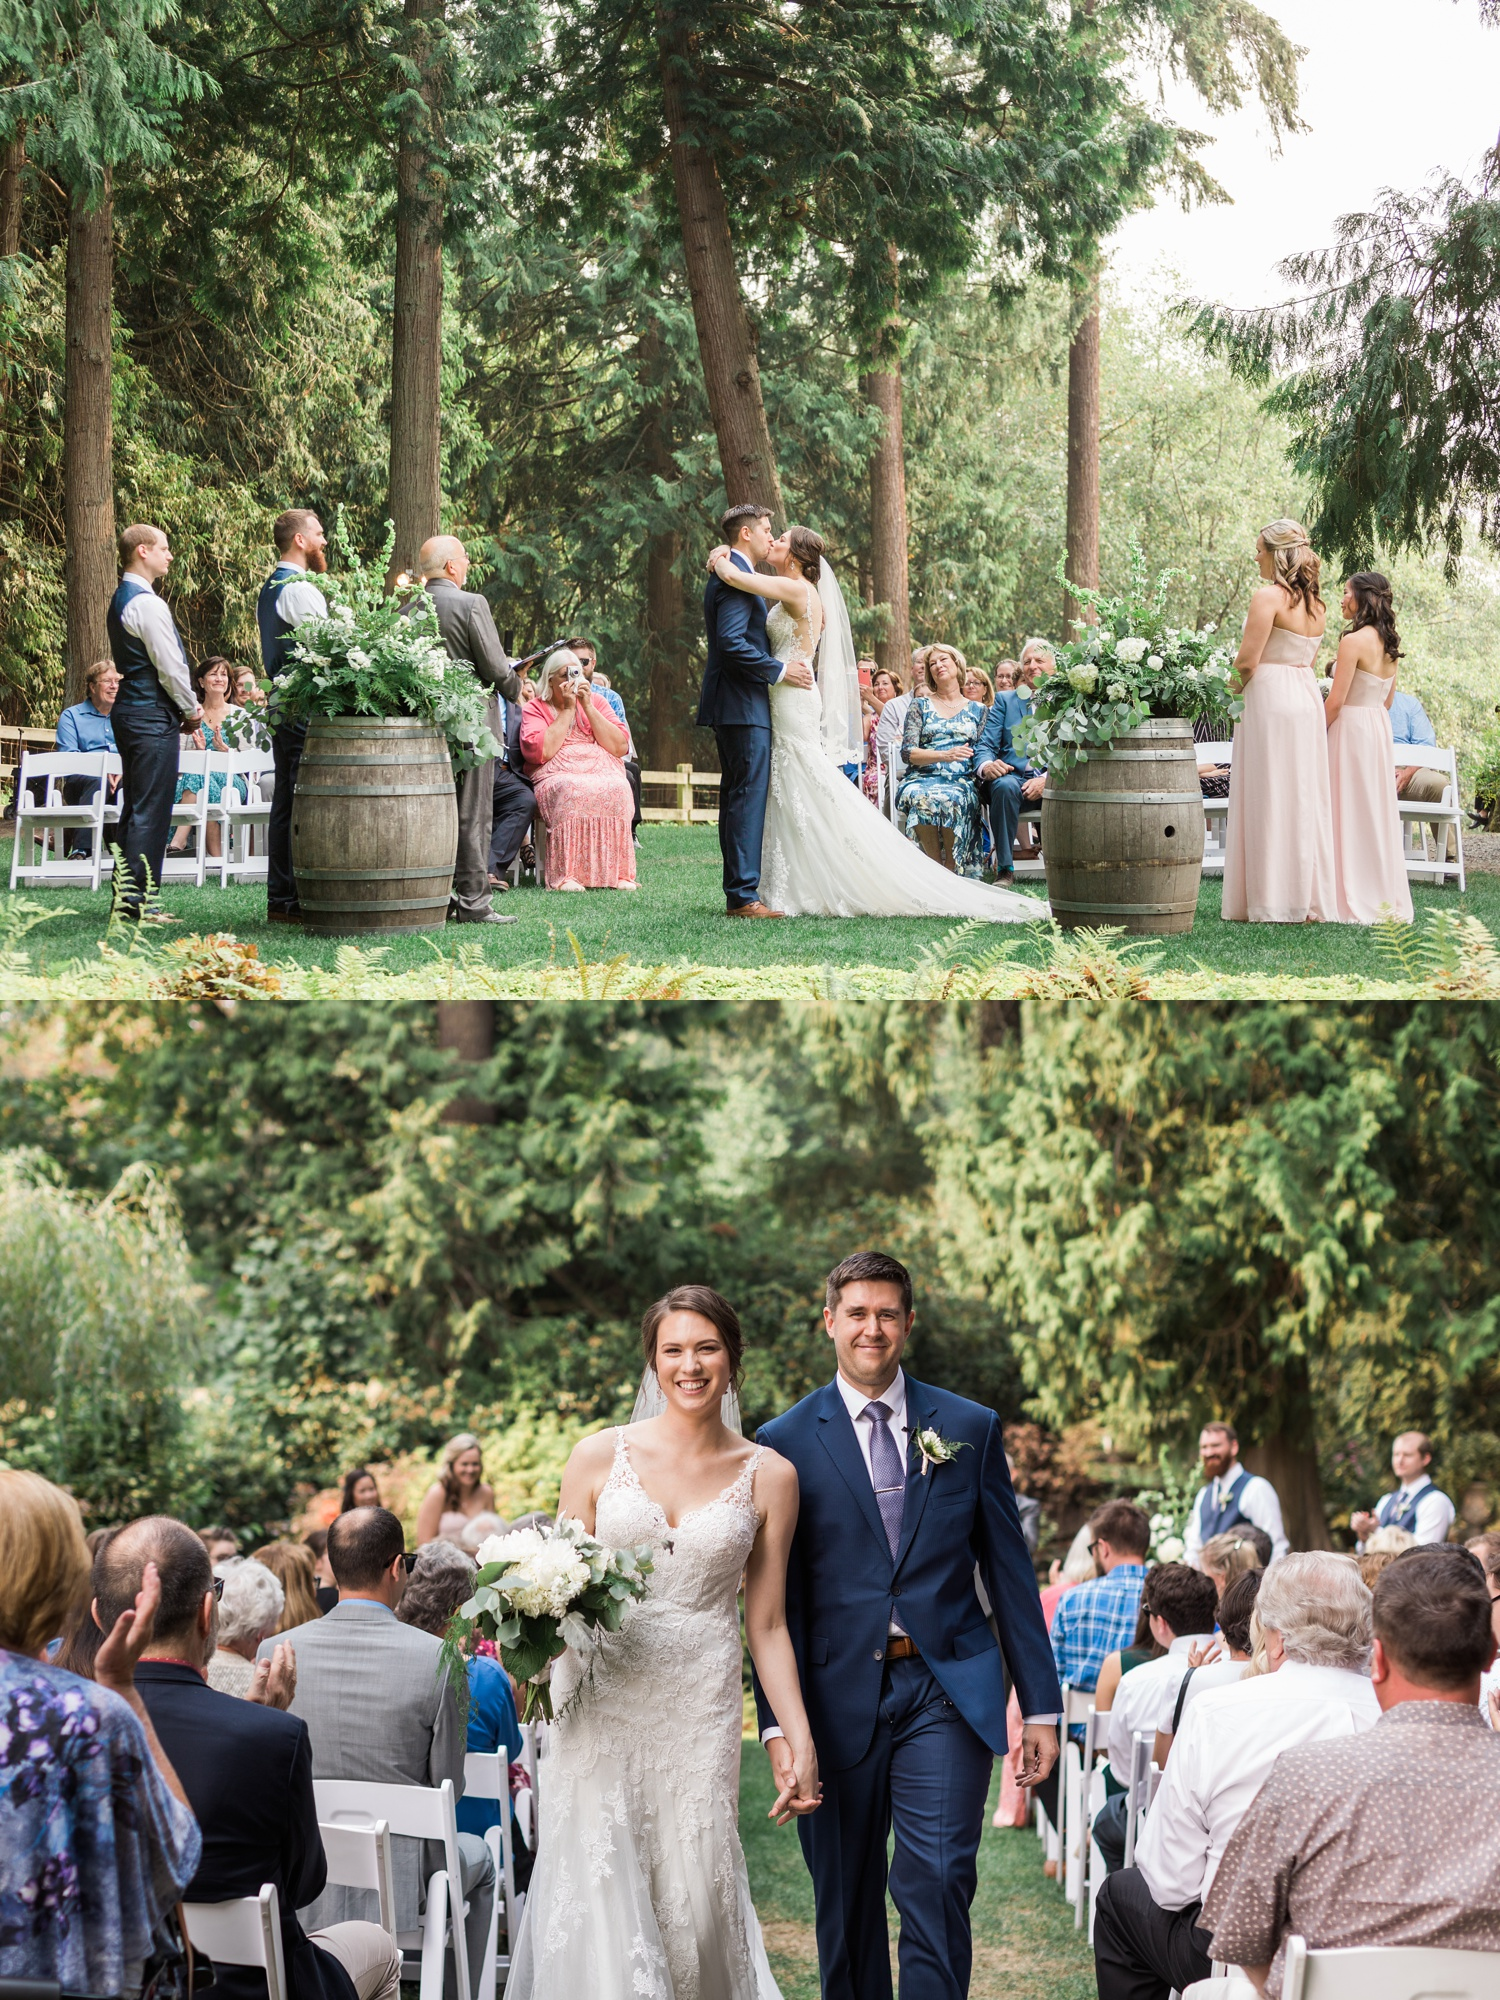 A bride and groom kiss during their outdoor wedding ceremony at Chateau Lill in Woodinville, a wedding venue near Seattle, WA. | Joanna Monger Photography | Seattle & Snohomish Photographer